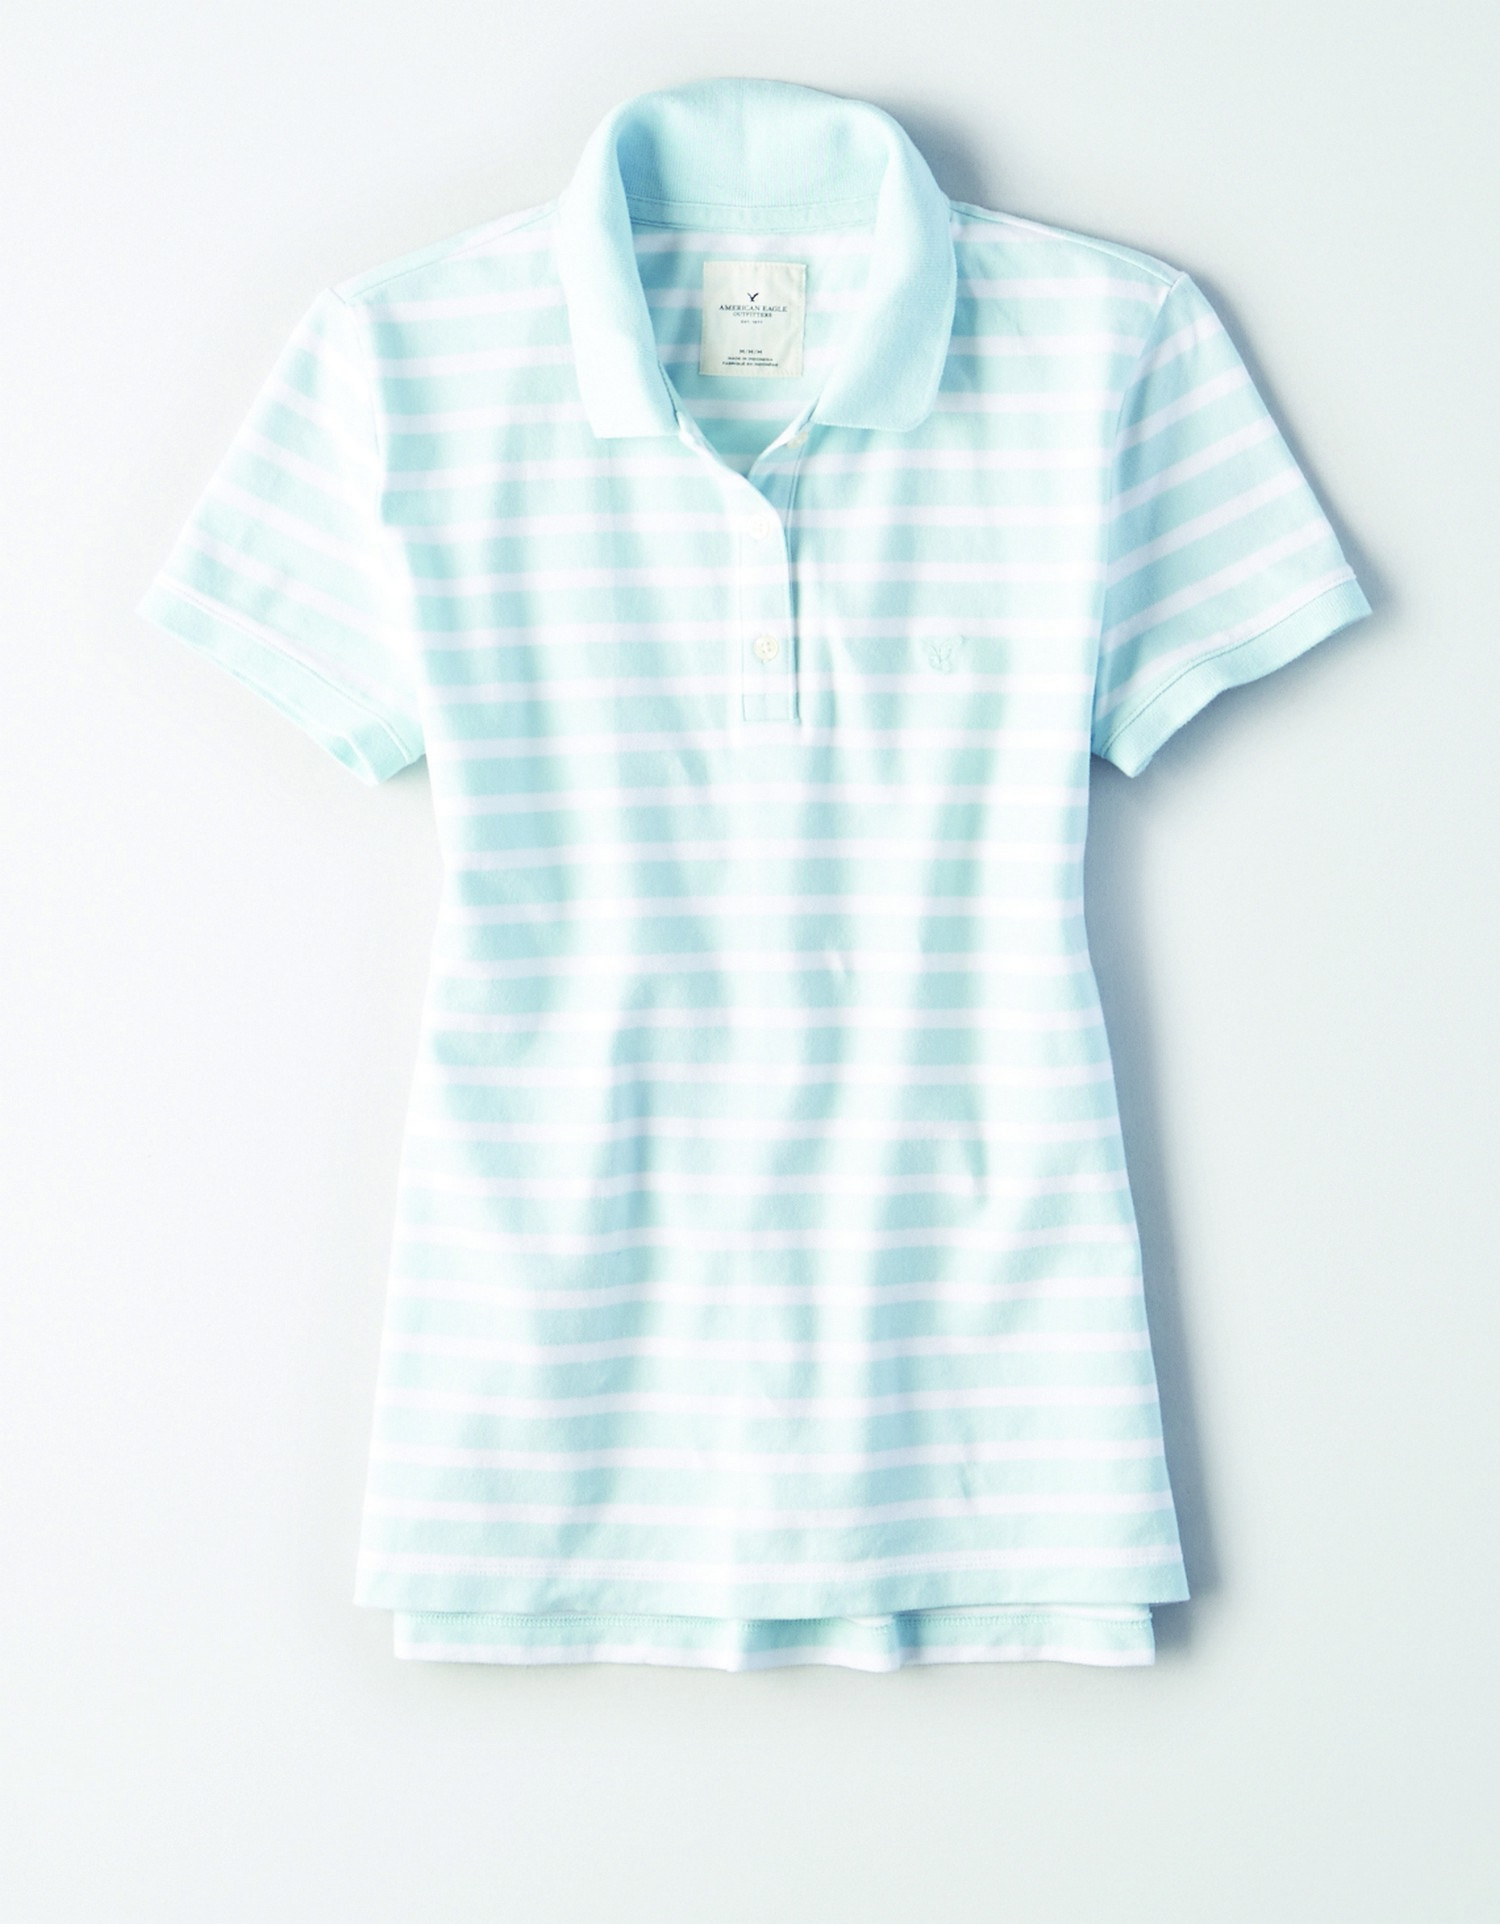 AE - INTL - Apparel - W - Striped Polo - Light Blue with white horizontal stripes - light blue embroidered eagle on left chest JP